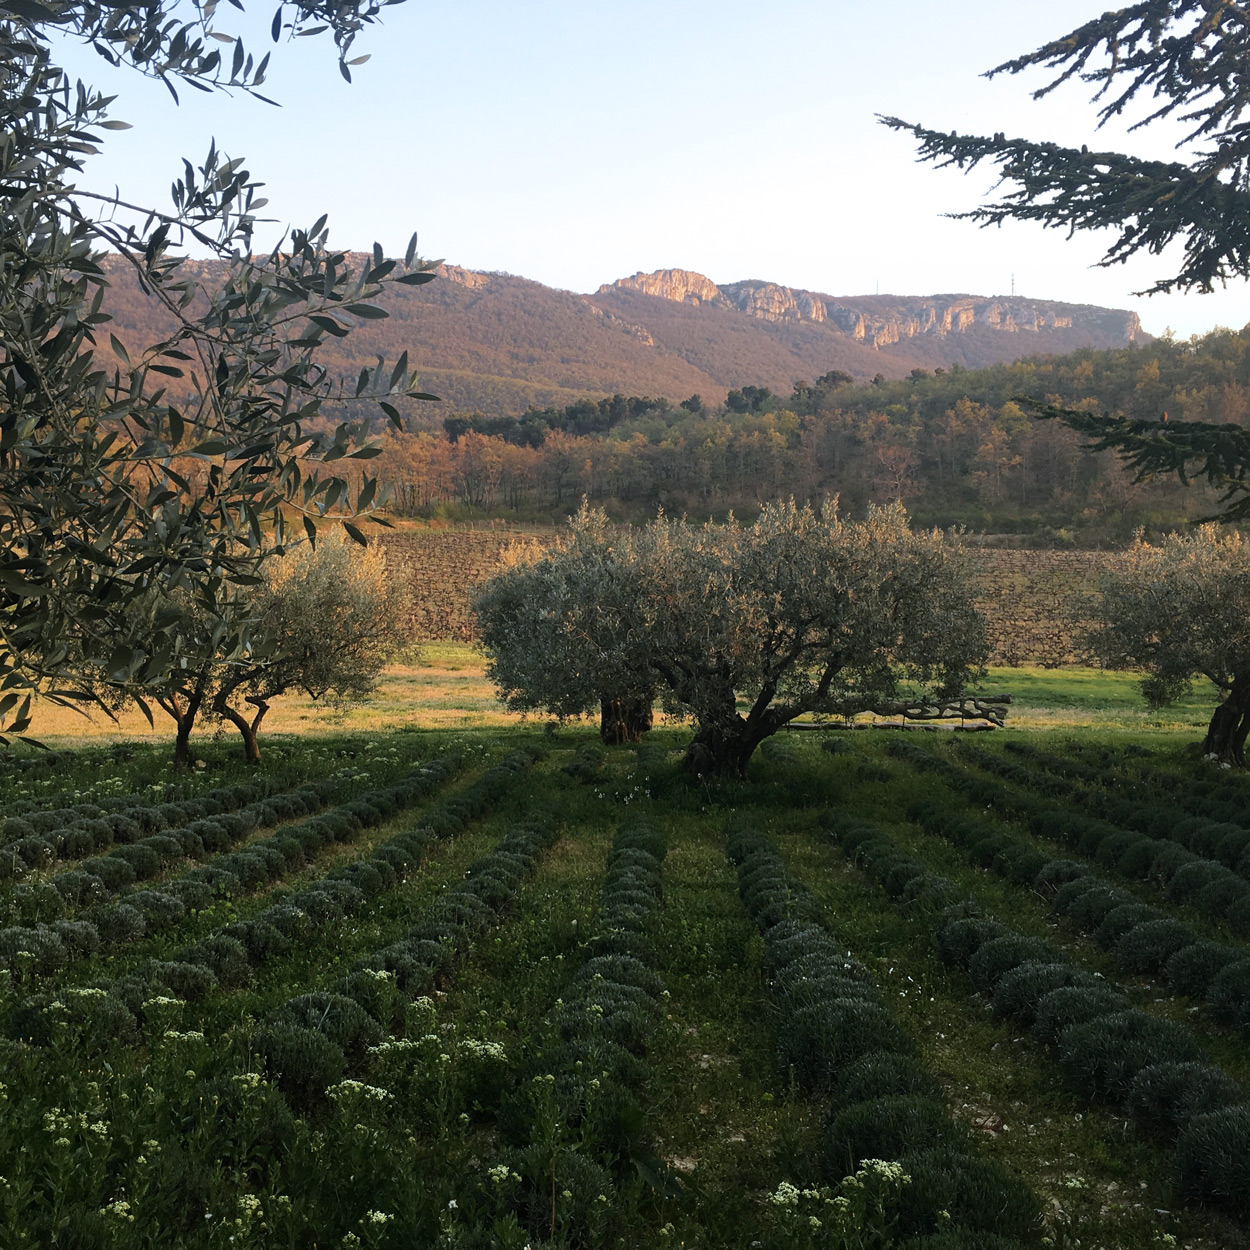 Four Kingdoms and a Place: Committing to Wine of Terroir